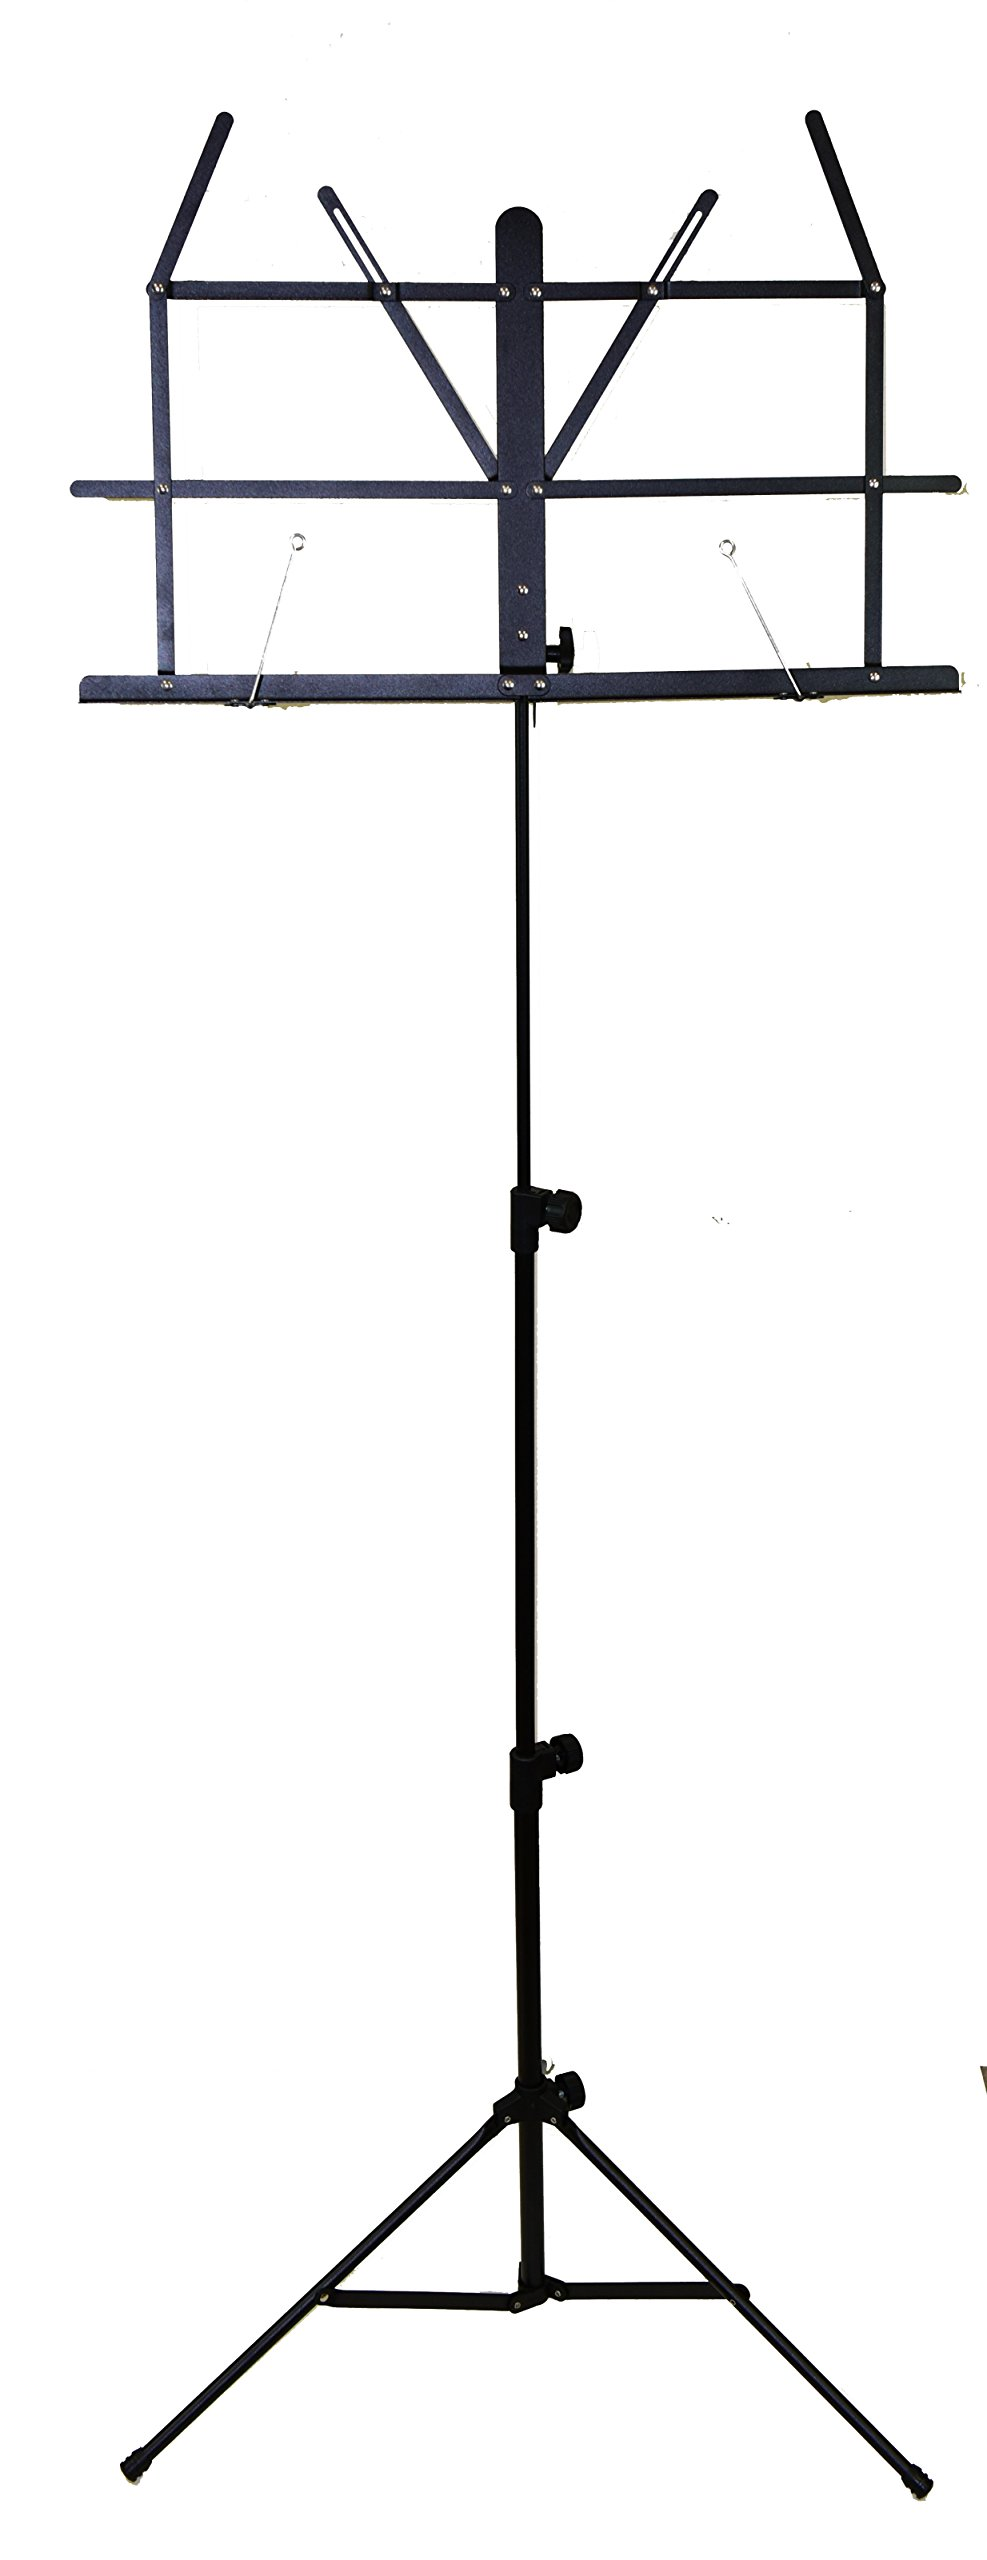 Hisonic Signature Series 7121 Two Section Folding Music Stand with Carrying Bag by Signature Music Instruments (Image #2)